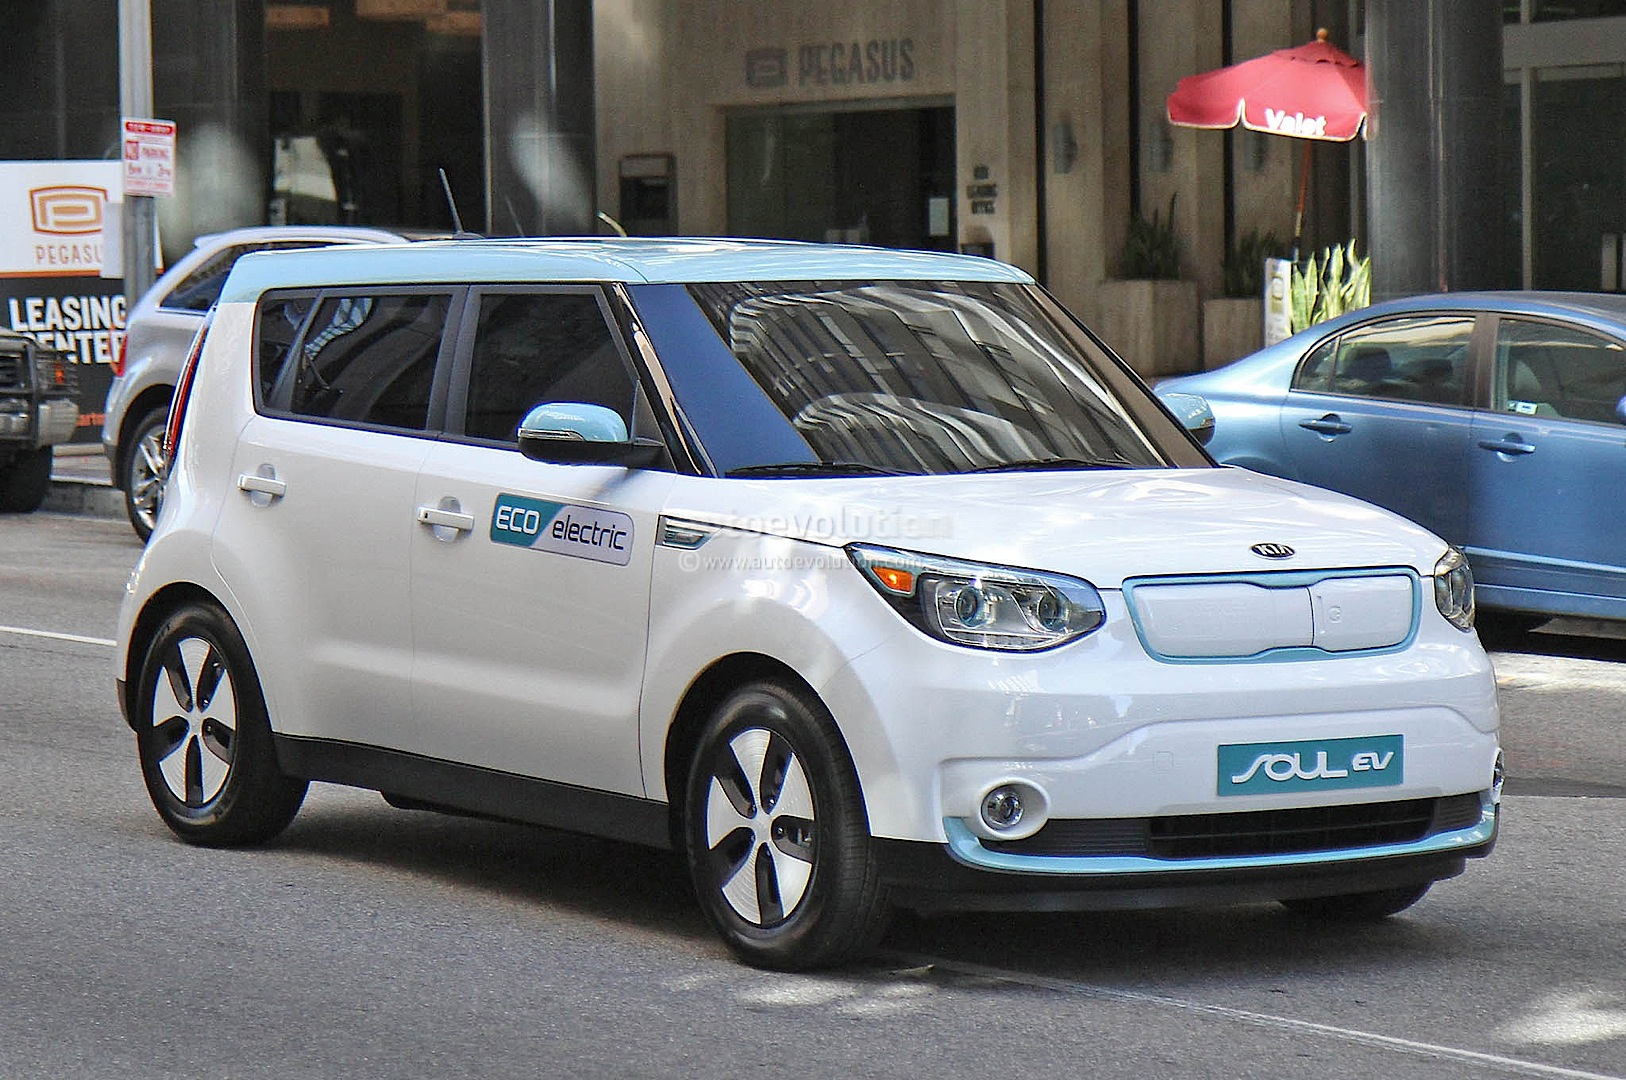 spyshots 2015 kia soul ev caught undisguised during shoot. Black Bedroom Furniture Sets. Home Design Ideas